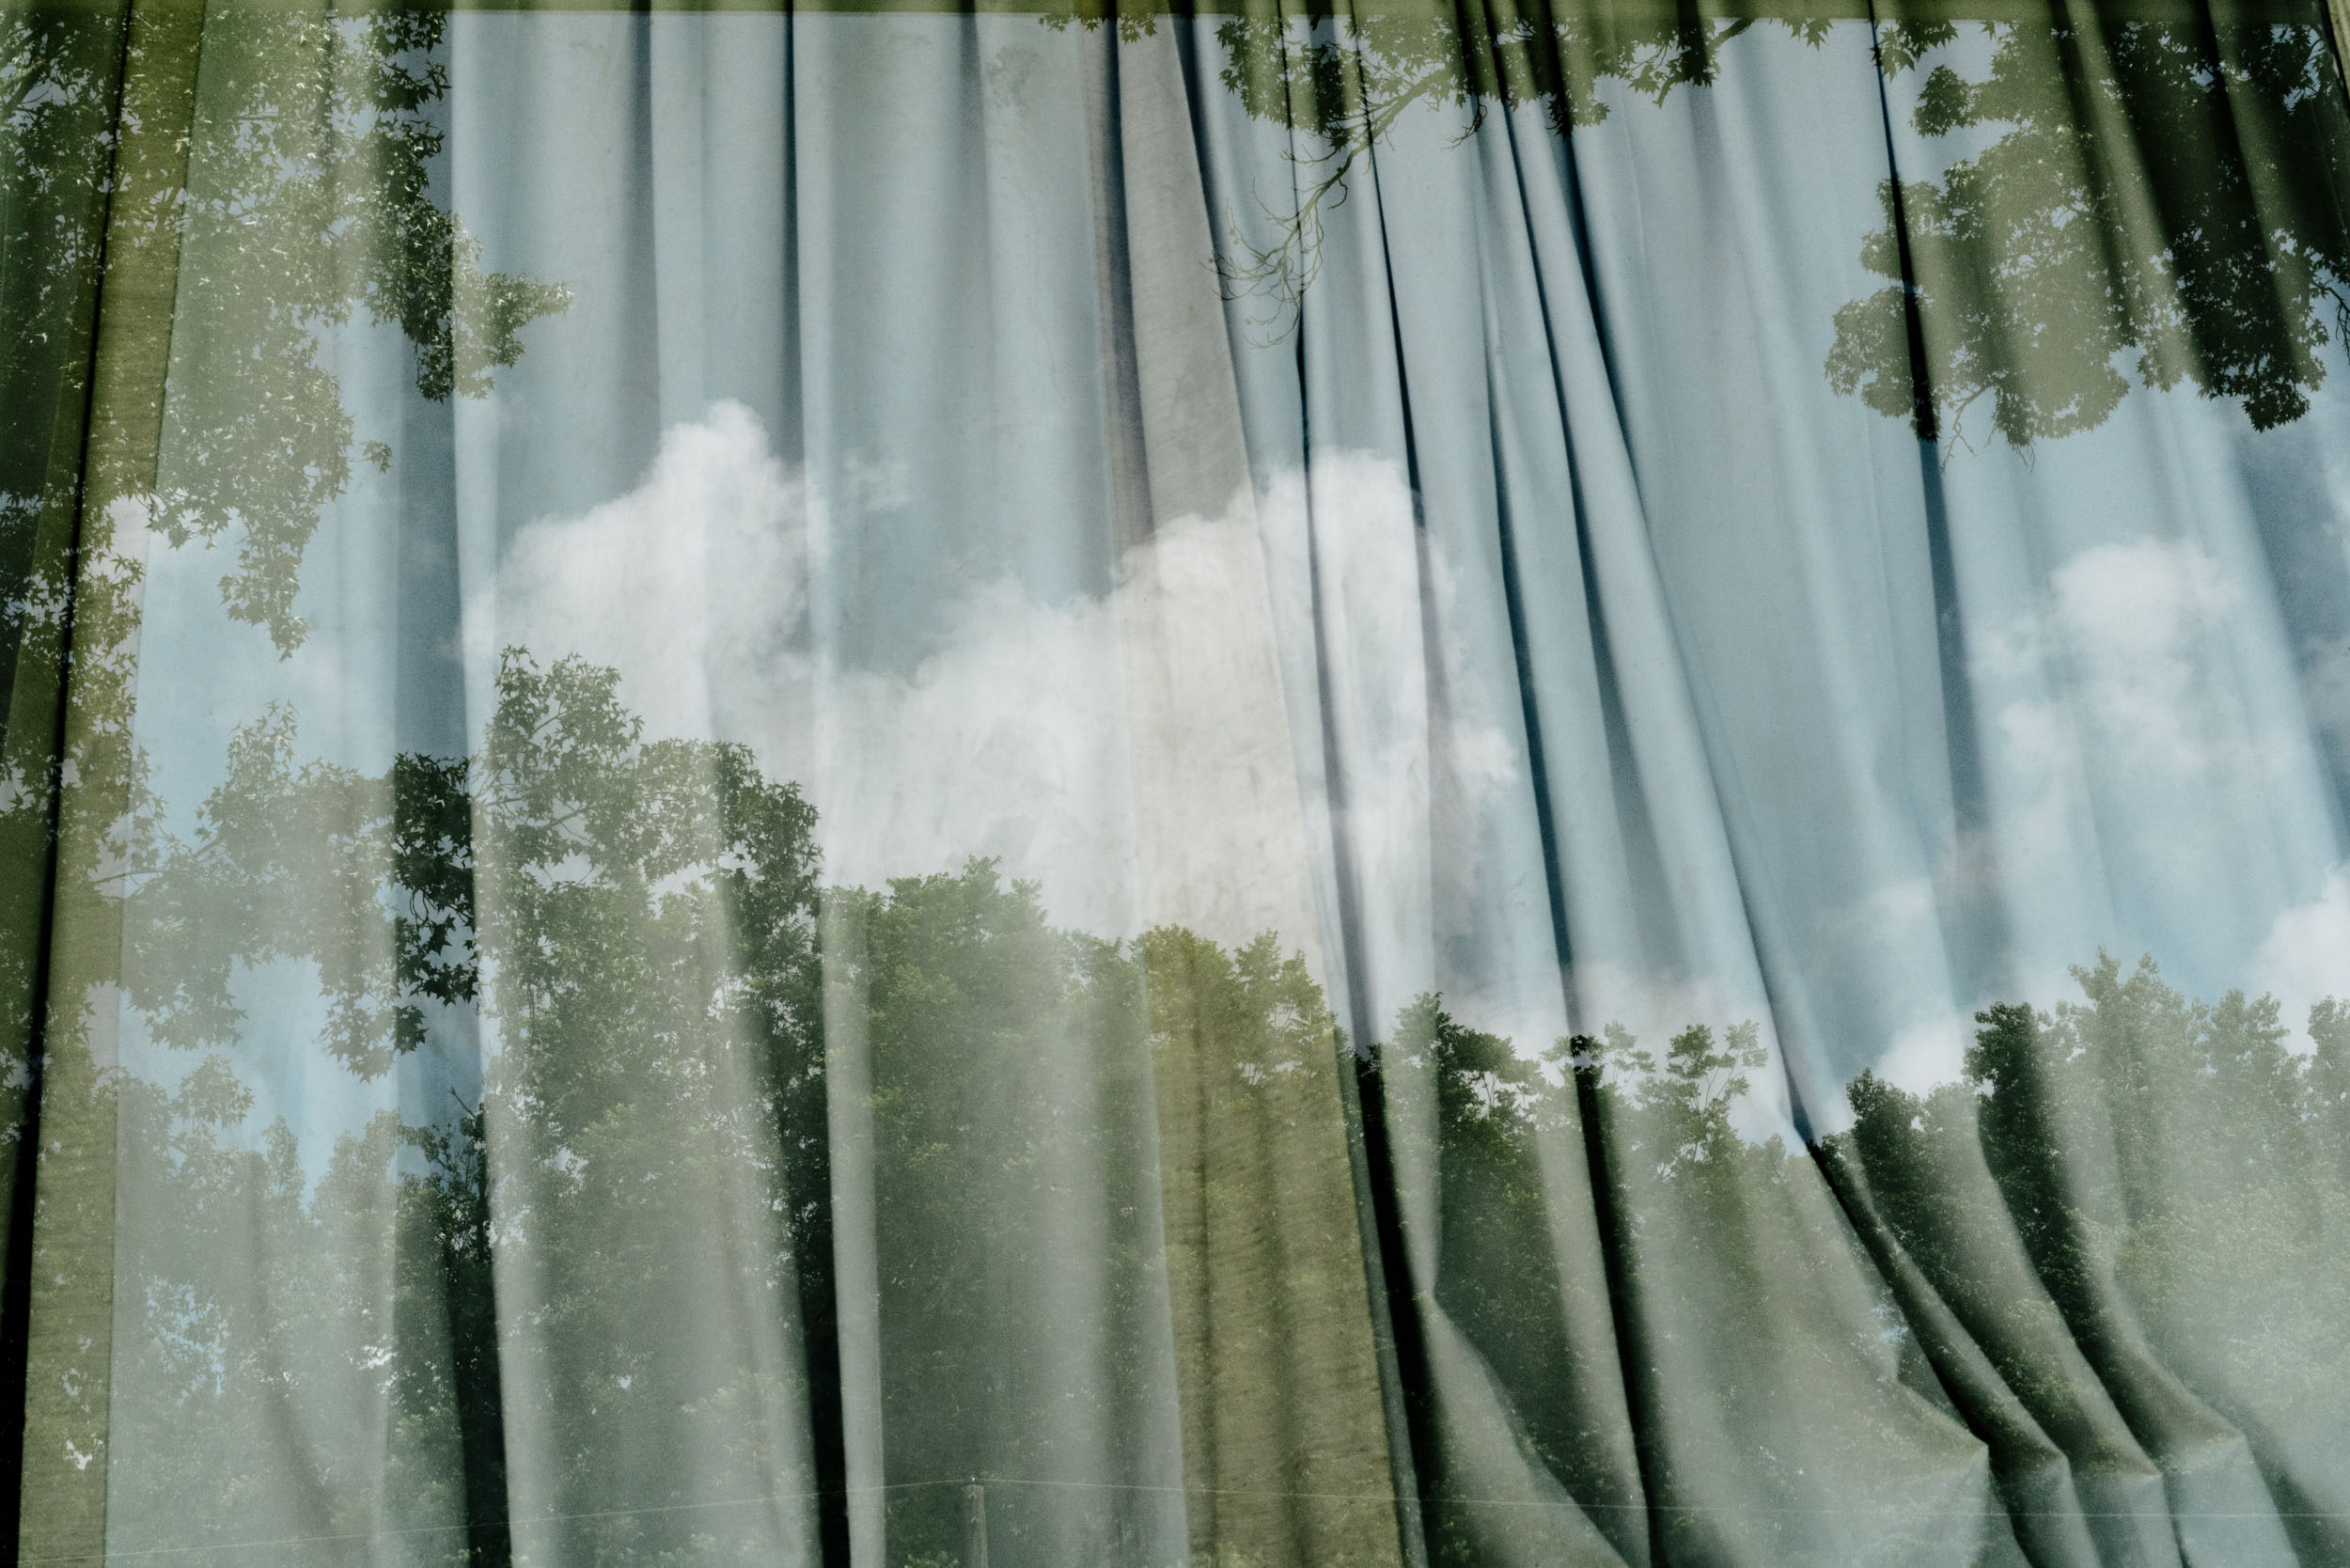 reflection of tree and sky in window with curtains